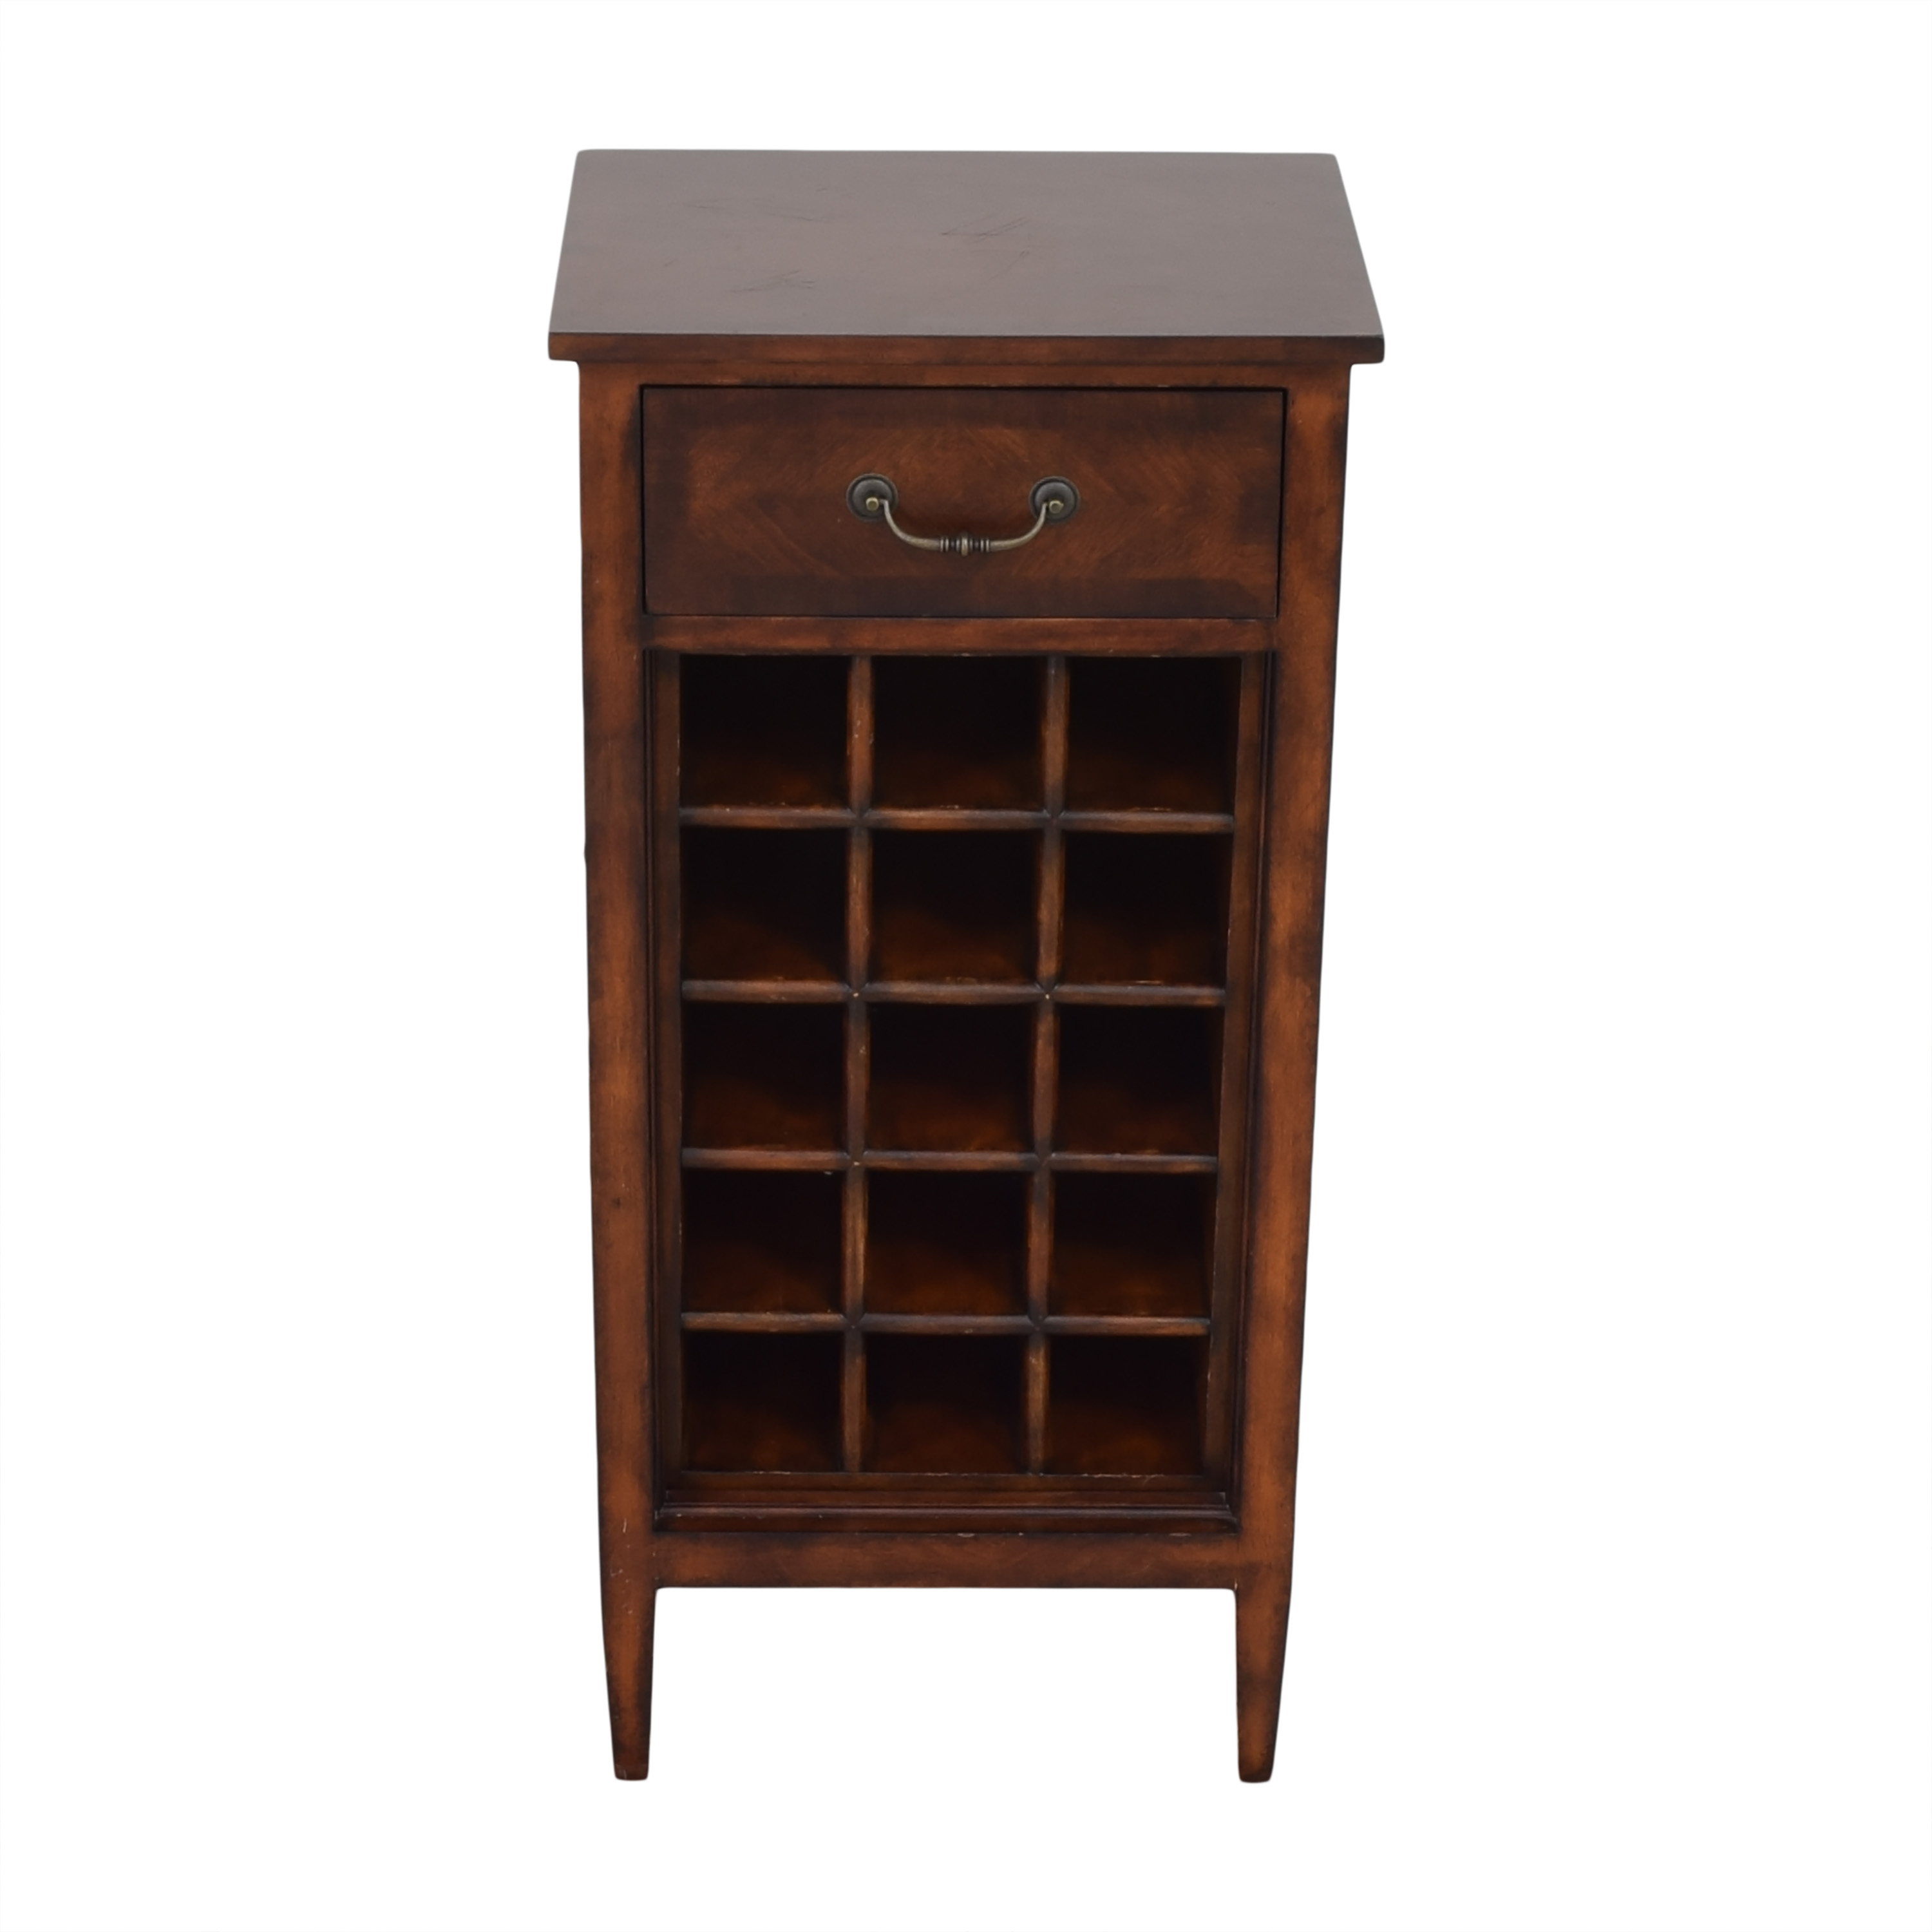 Ethan Allen Wine Cabinet and Side Table / Cabinets & Sideboards